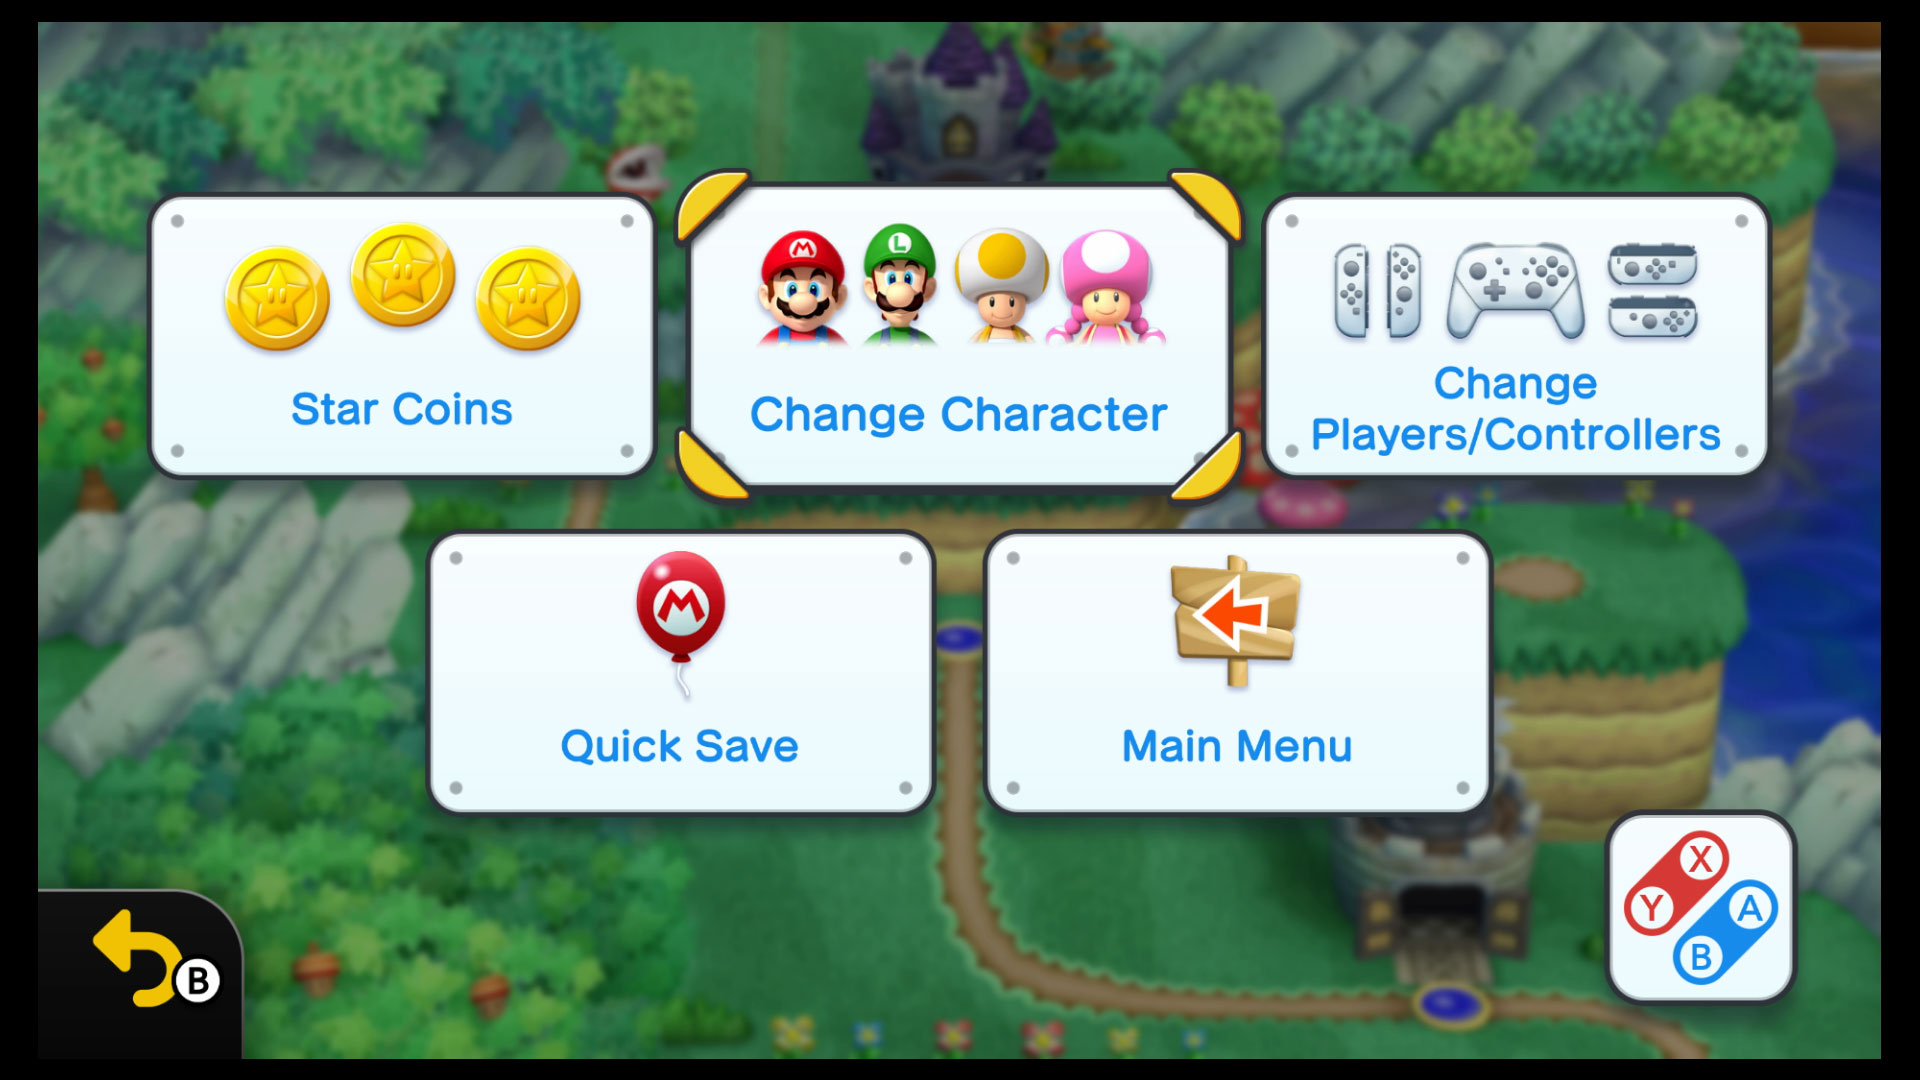 How To Change Characters In Game In New Super Mario Bros U Deluxe